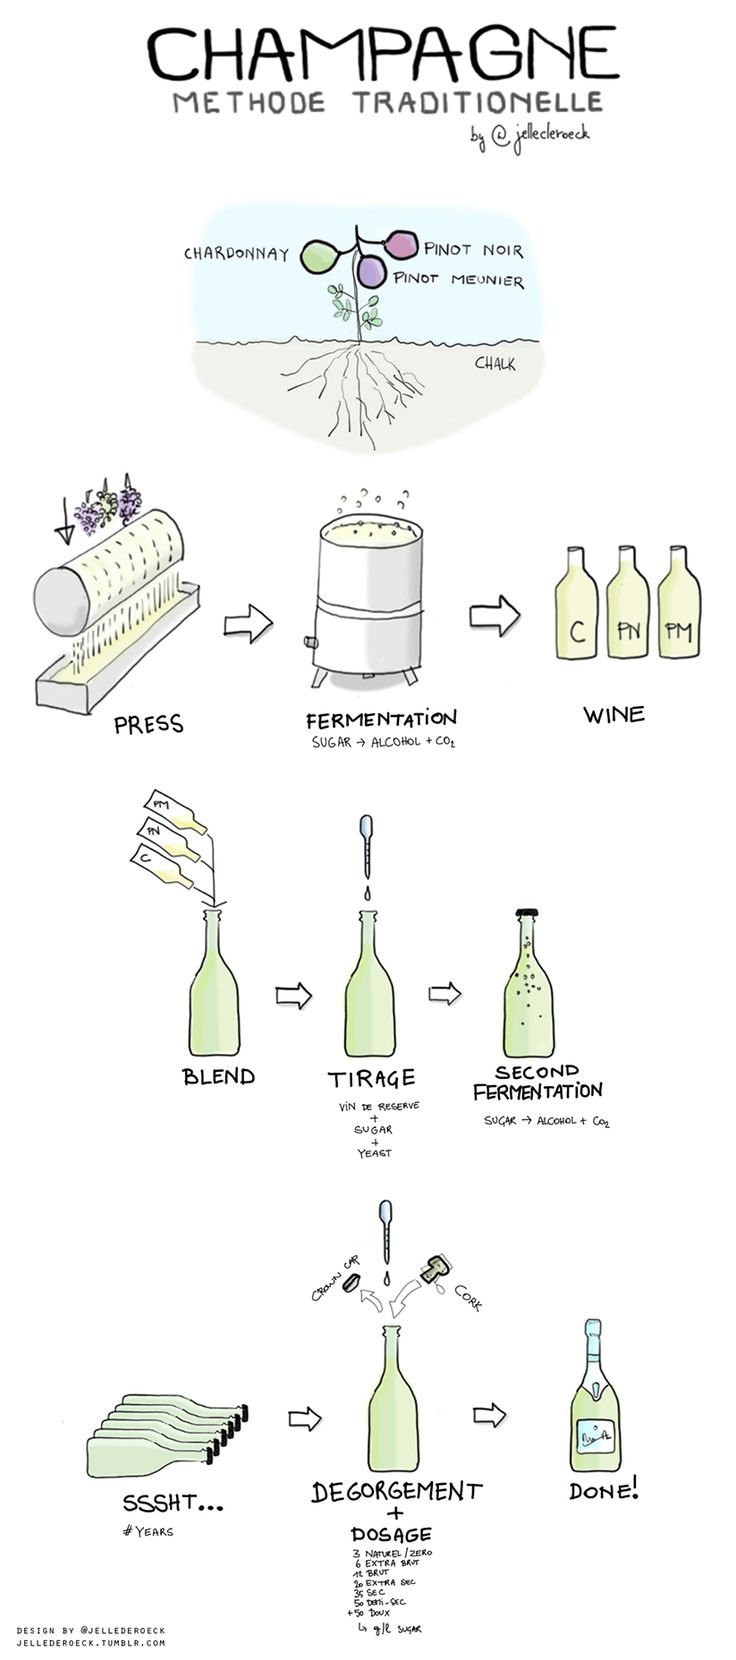 Where Do Champagne Bubbles Come From